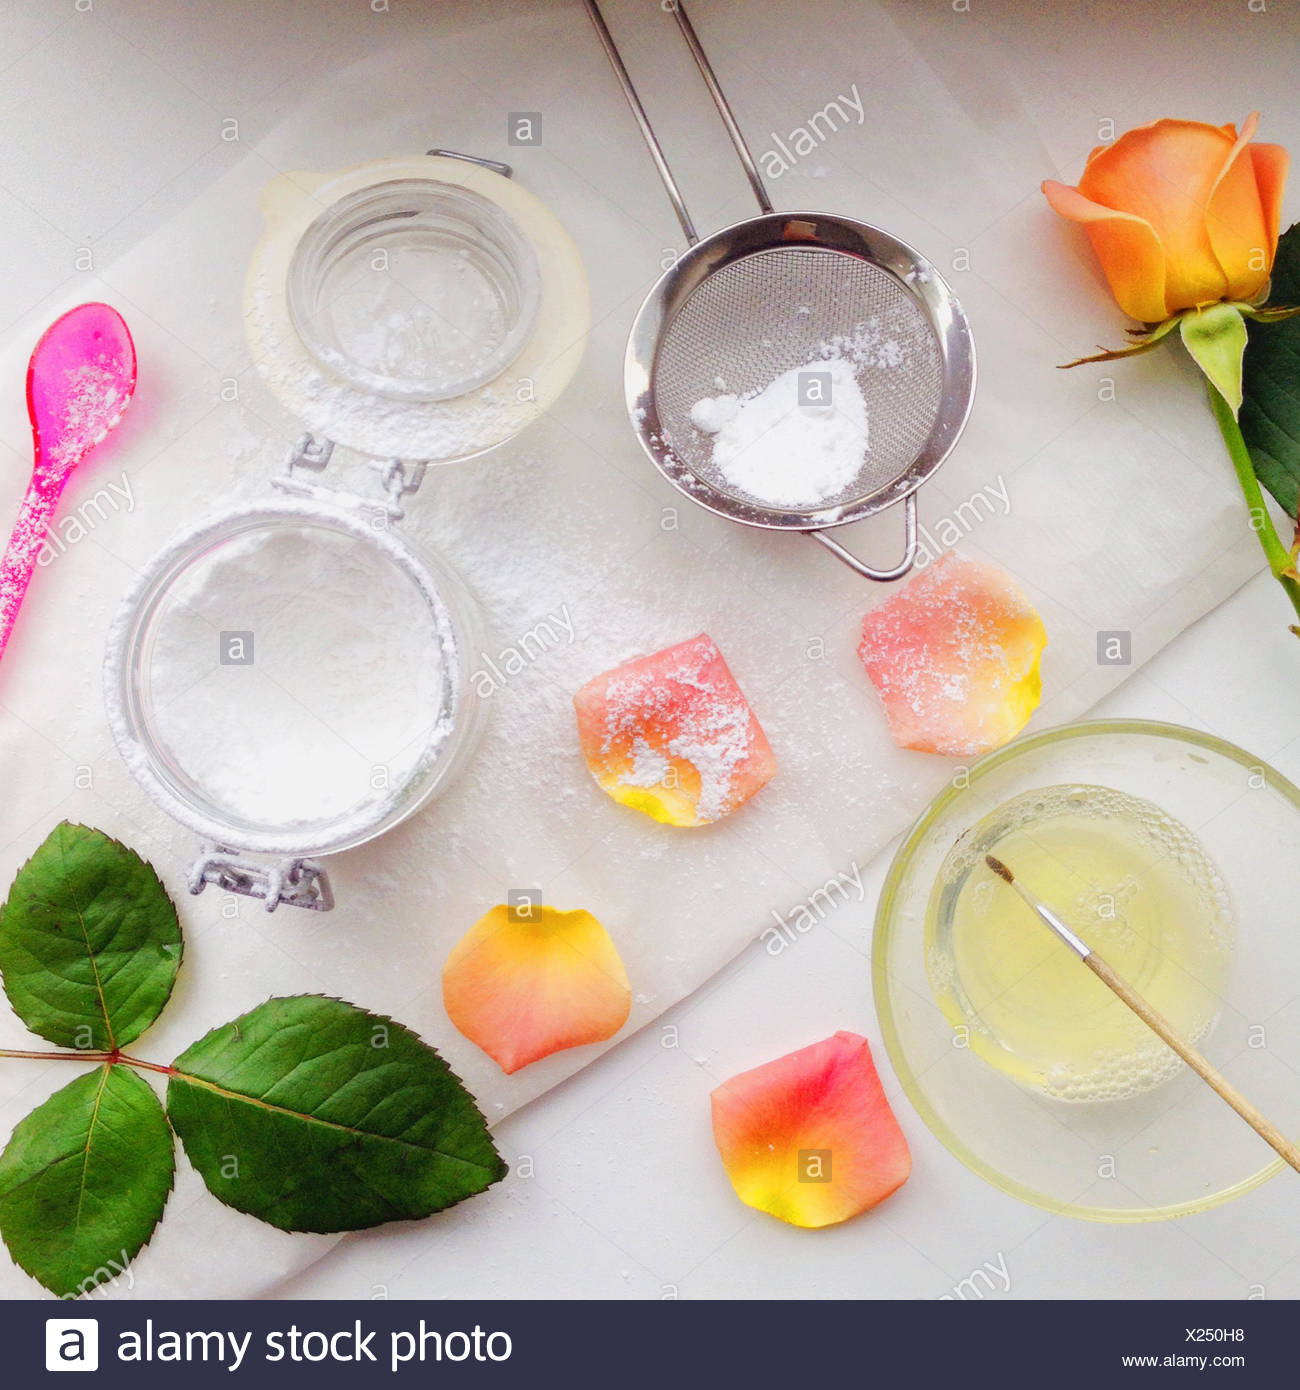 Edible flowers and icing sugar - Stock Image